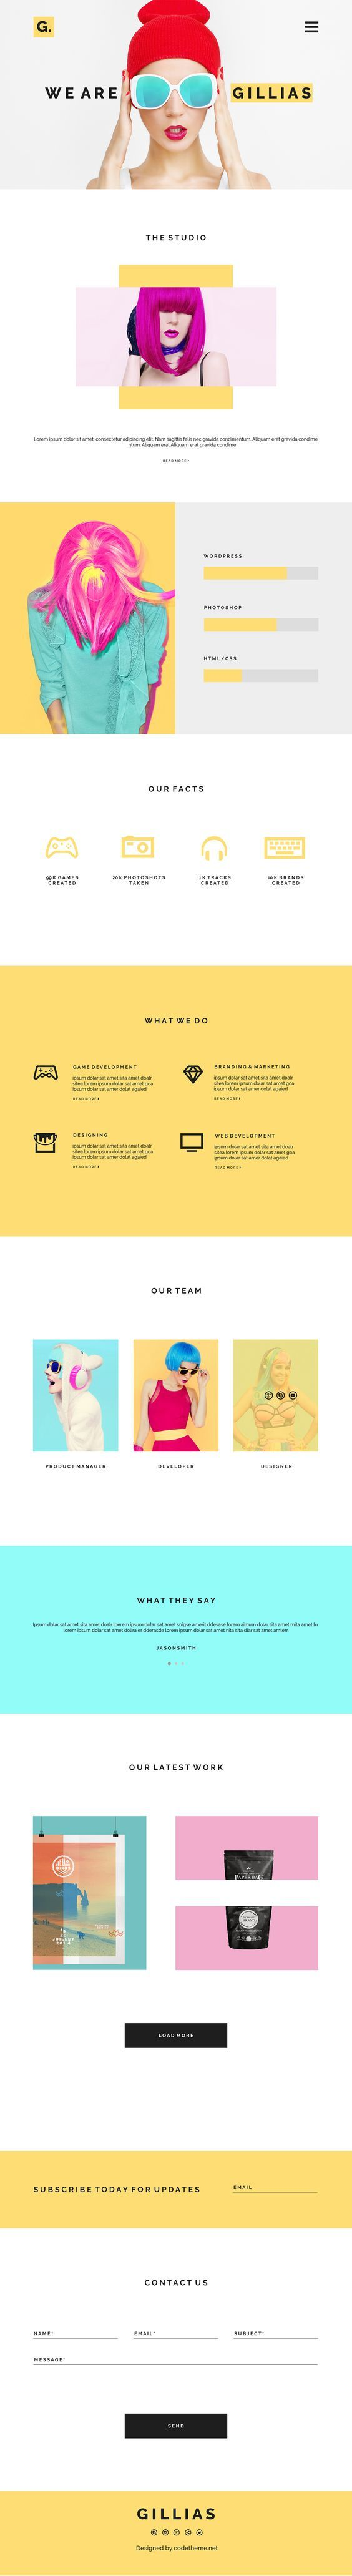 Gillias Agency Web Design by Daniel Pervaiz